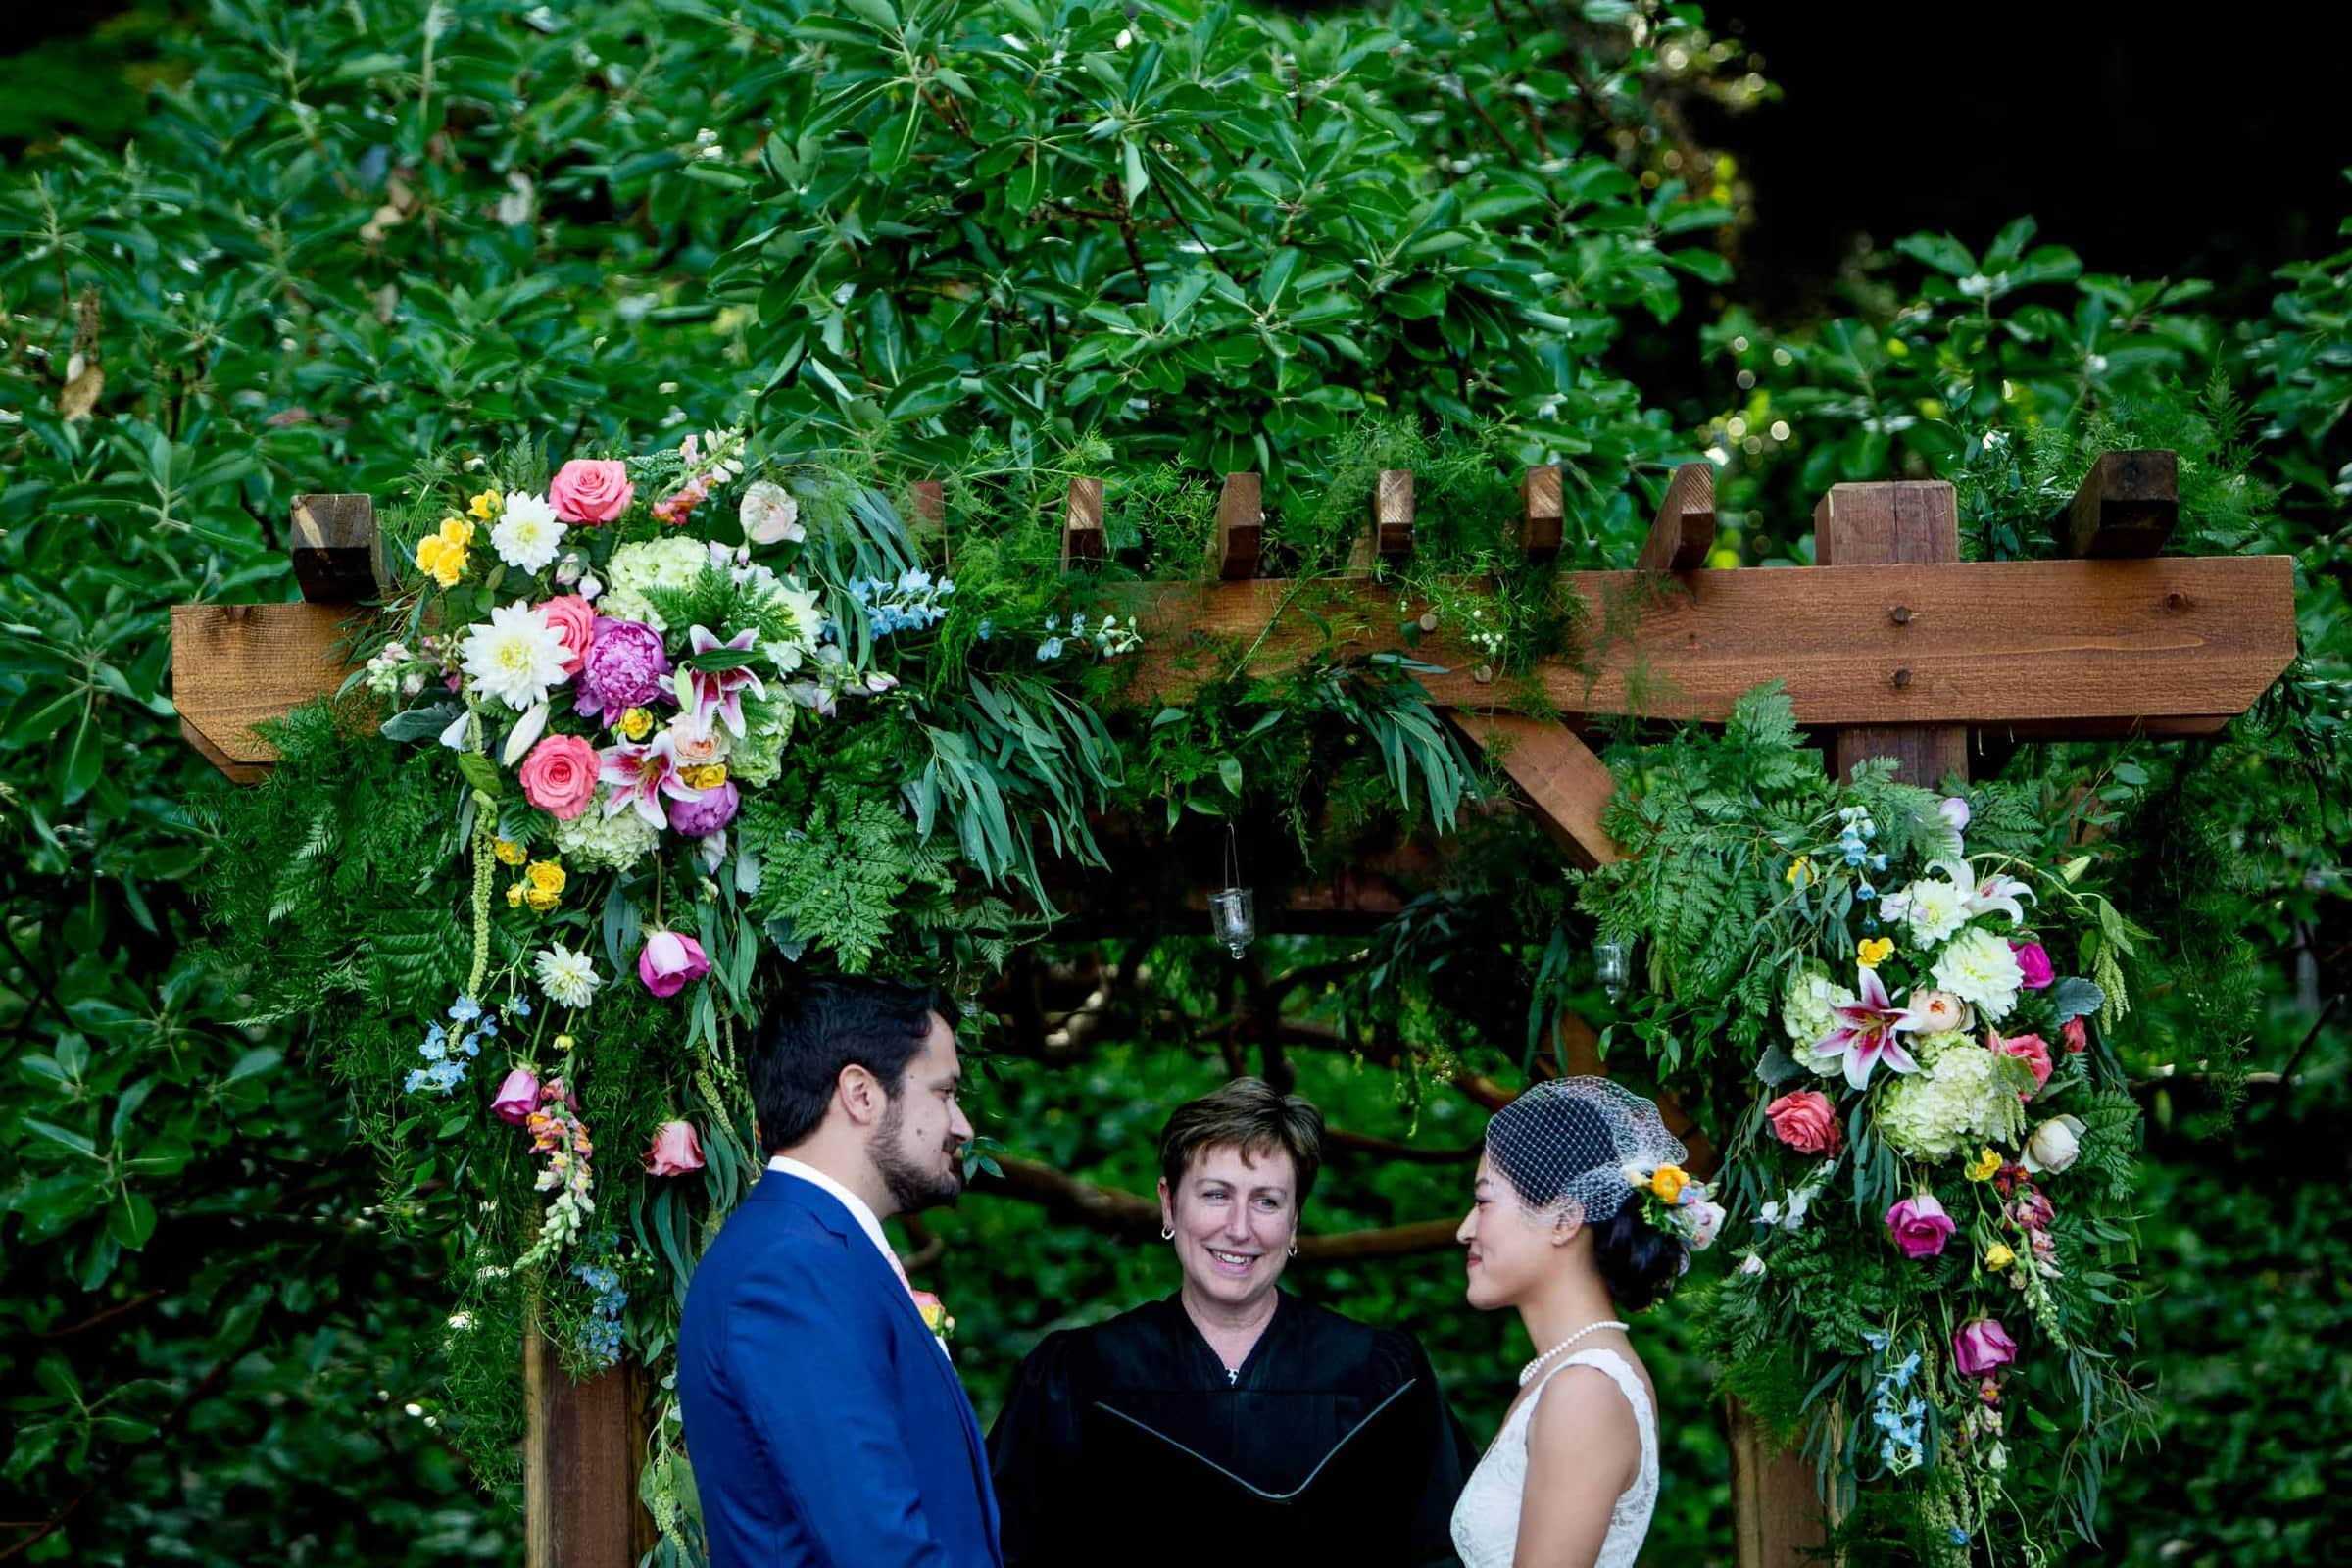 Bride and Groom exchanging vows during a private Seattle elopement ceremony